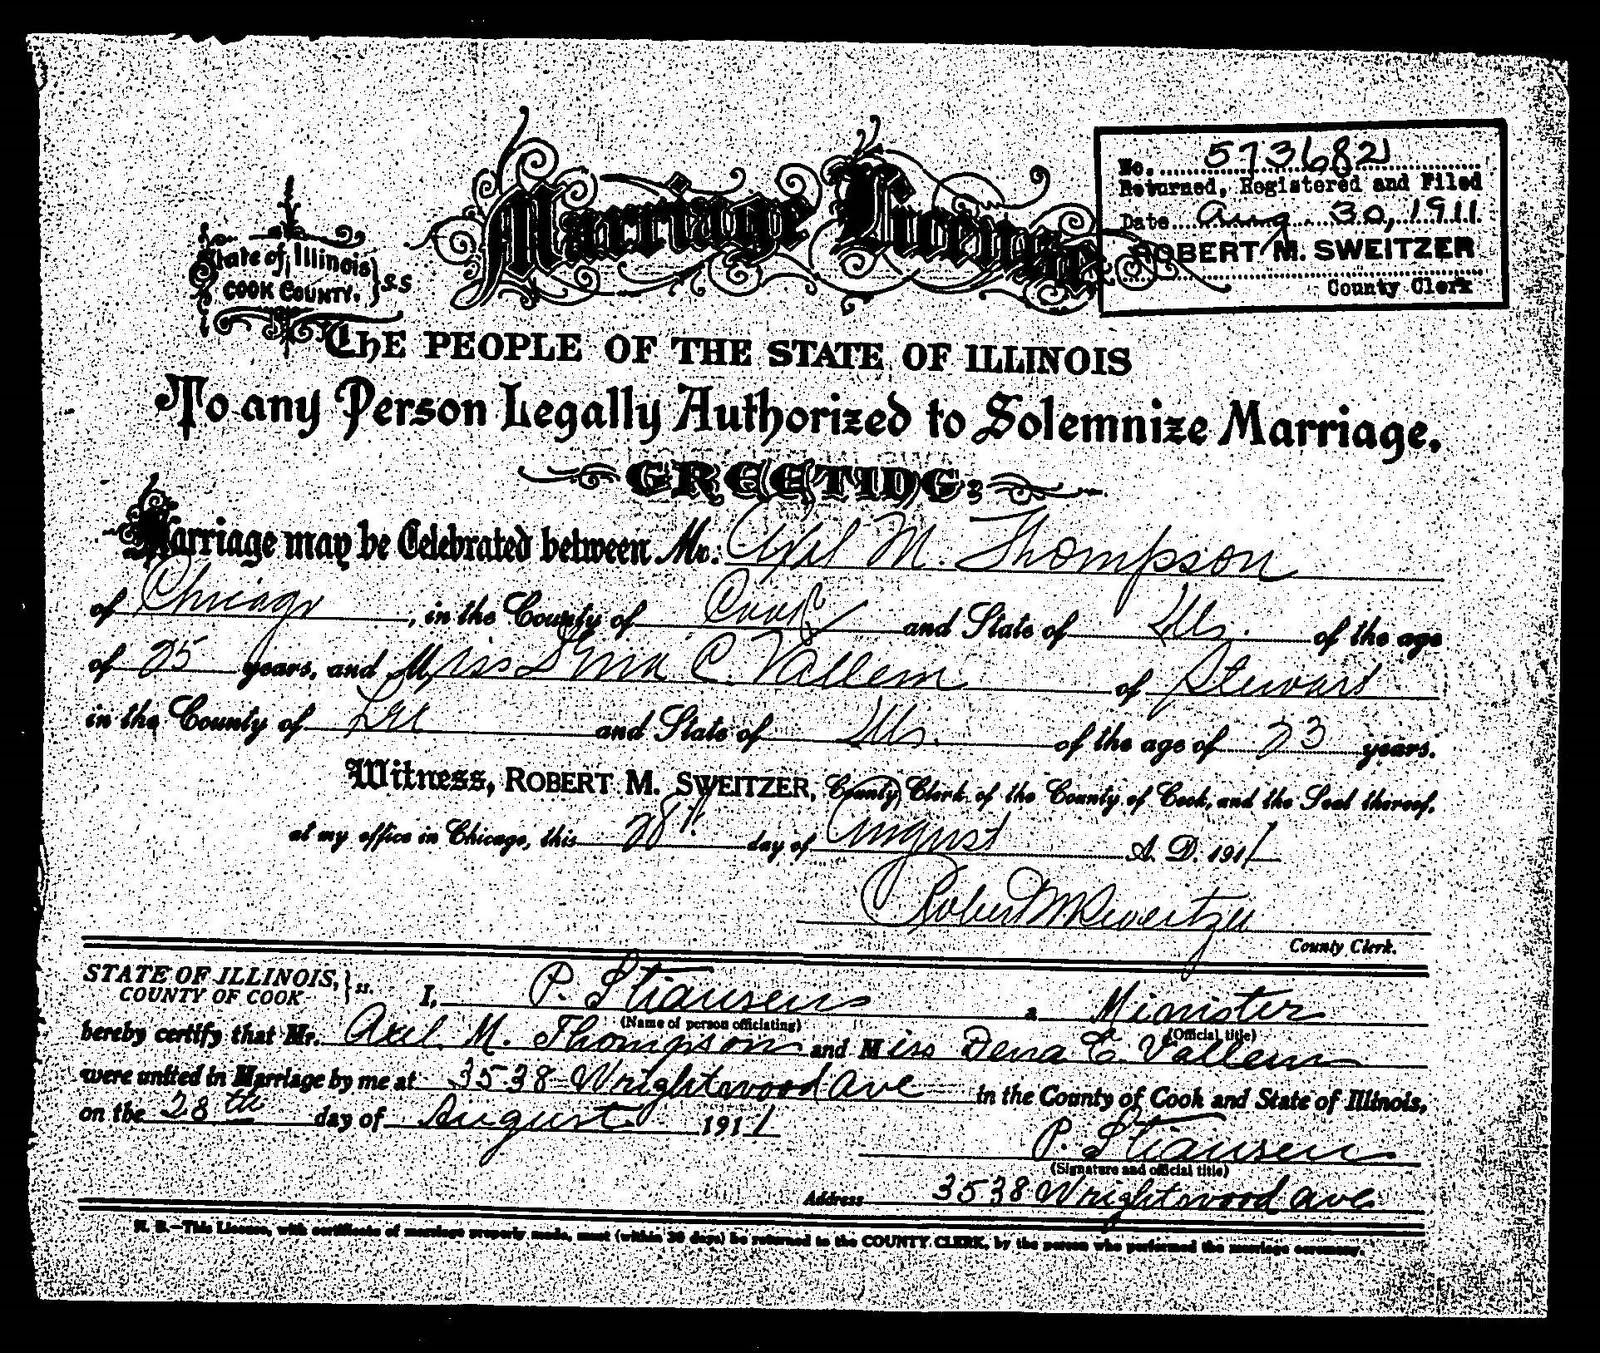 Copy Of Divorce Certificate: Finnestad Ancestry: Iverdena Vallem And Axel Thompson